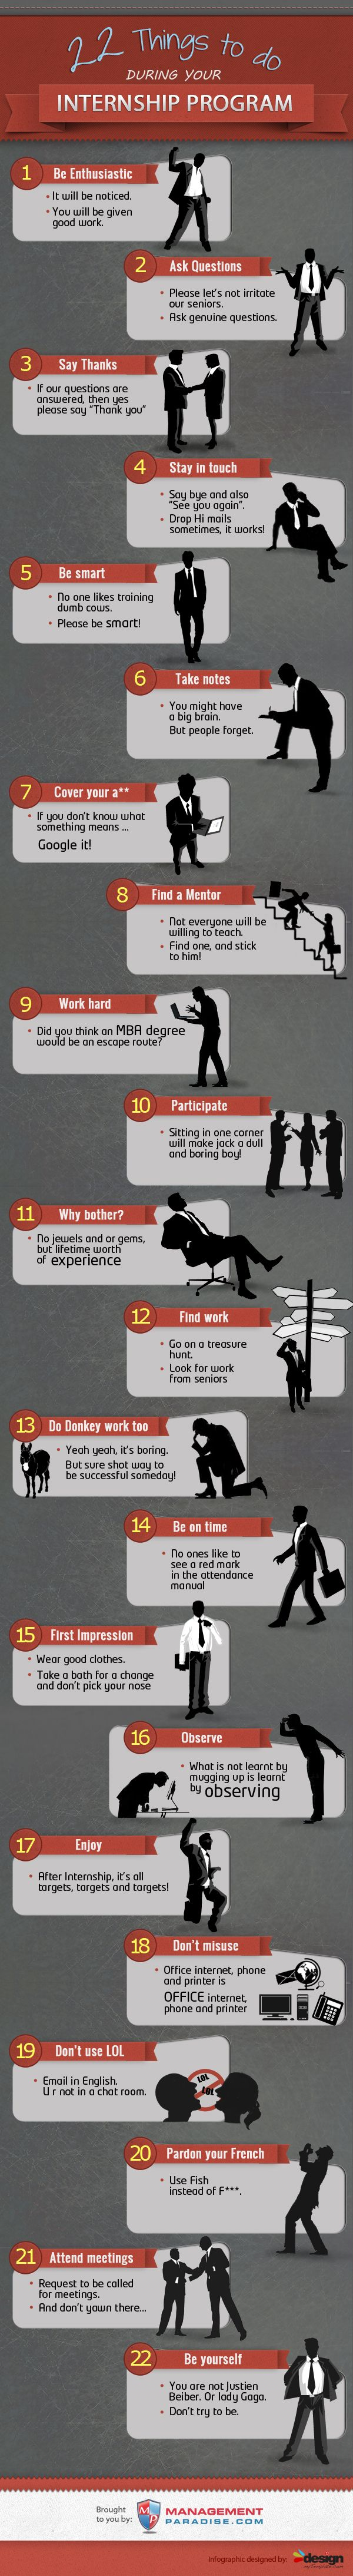 best images about all about internships 22 things to do during your internship program